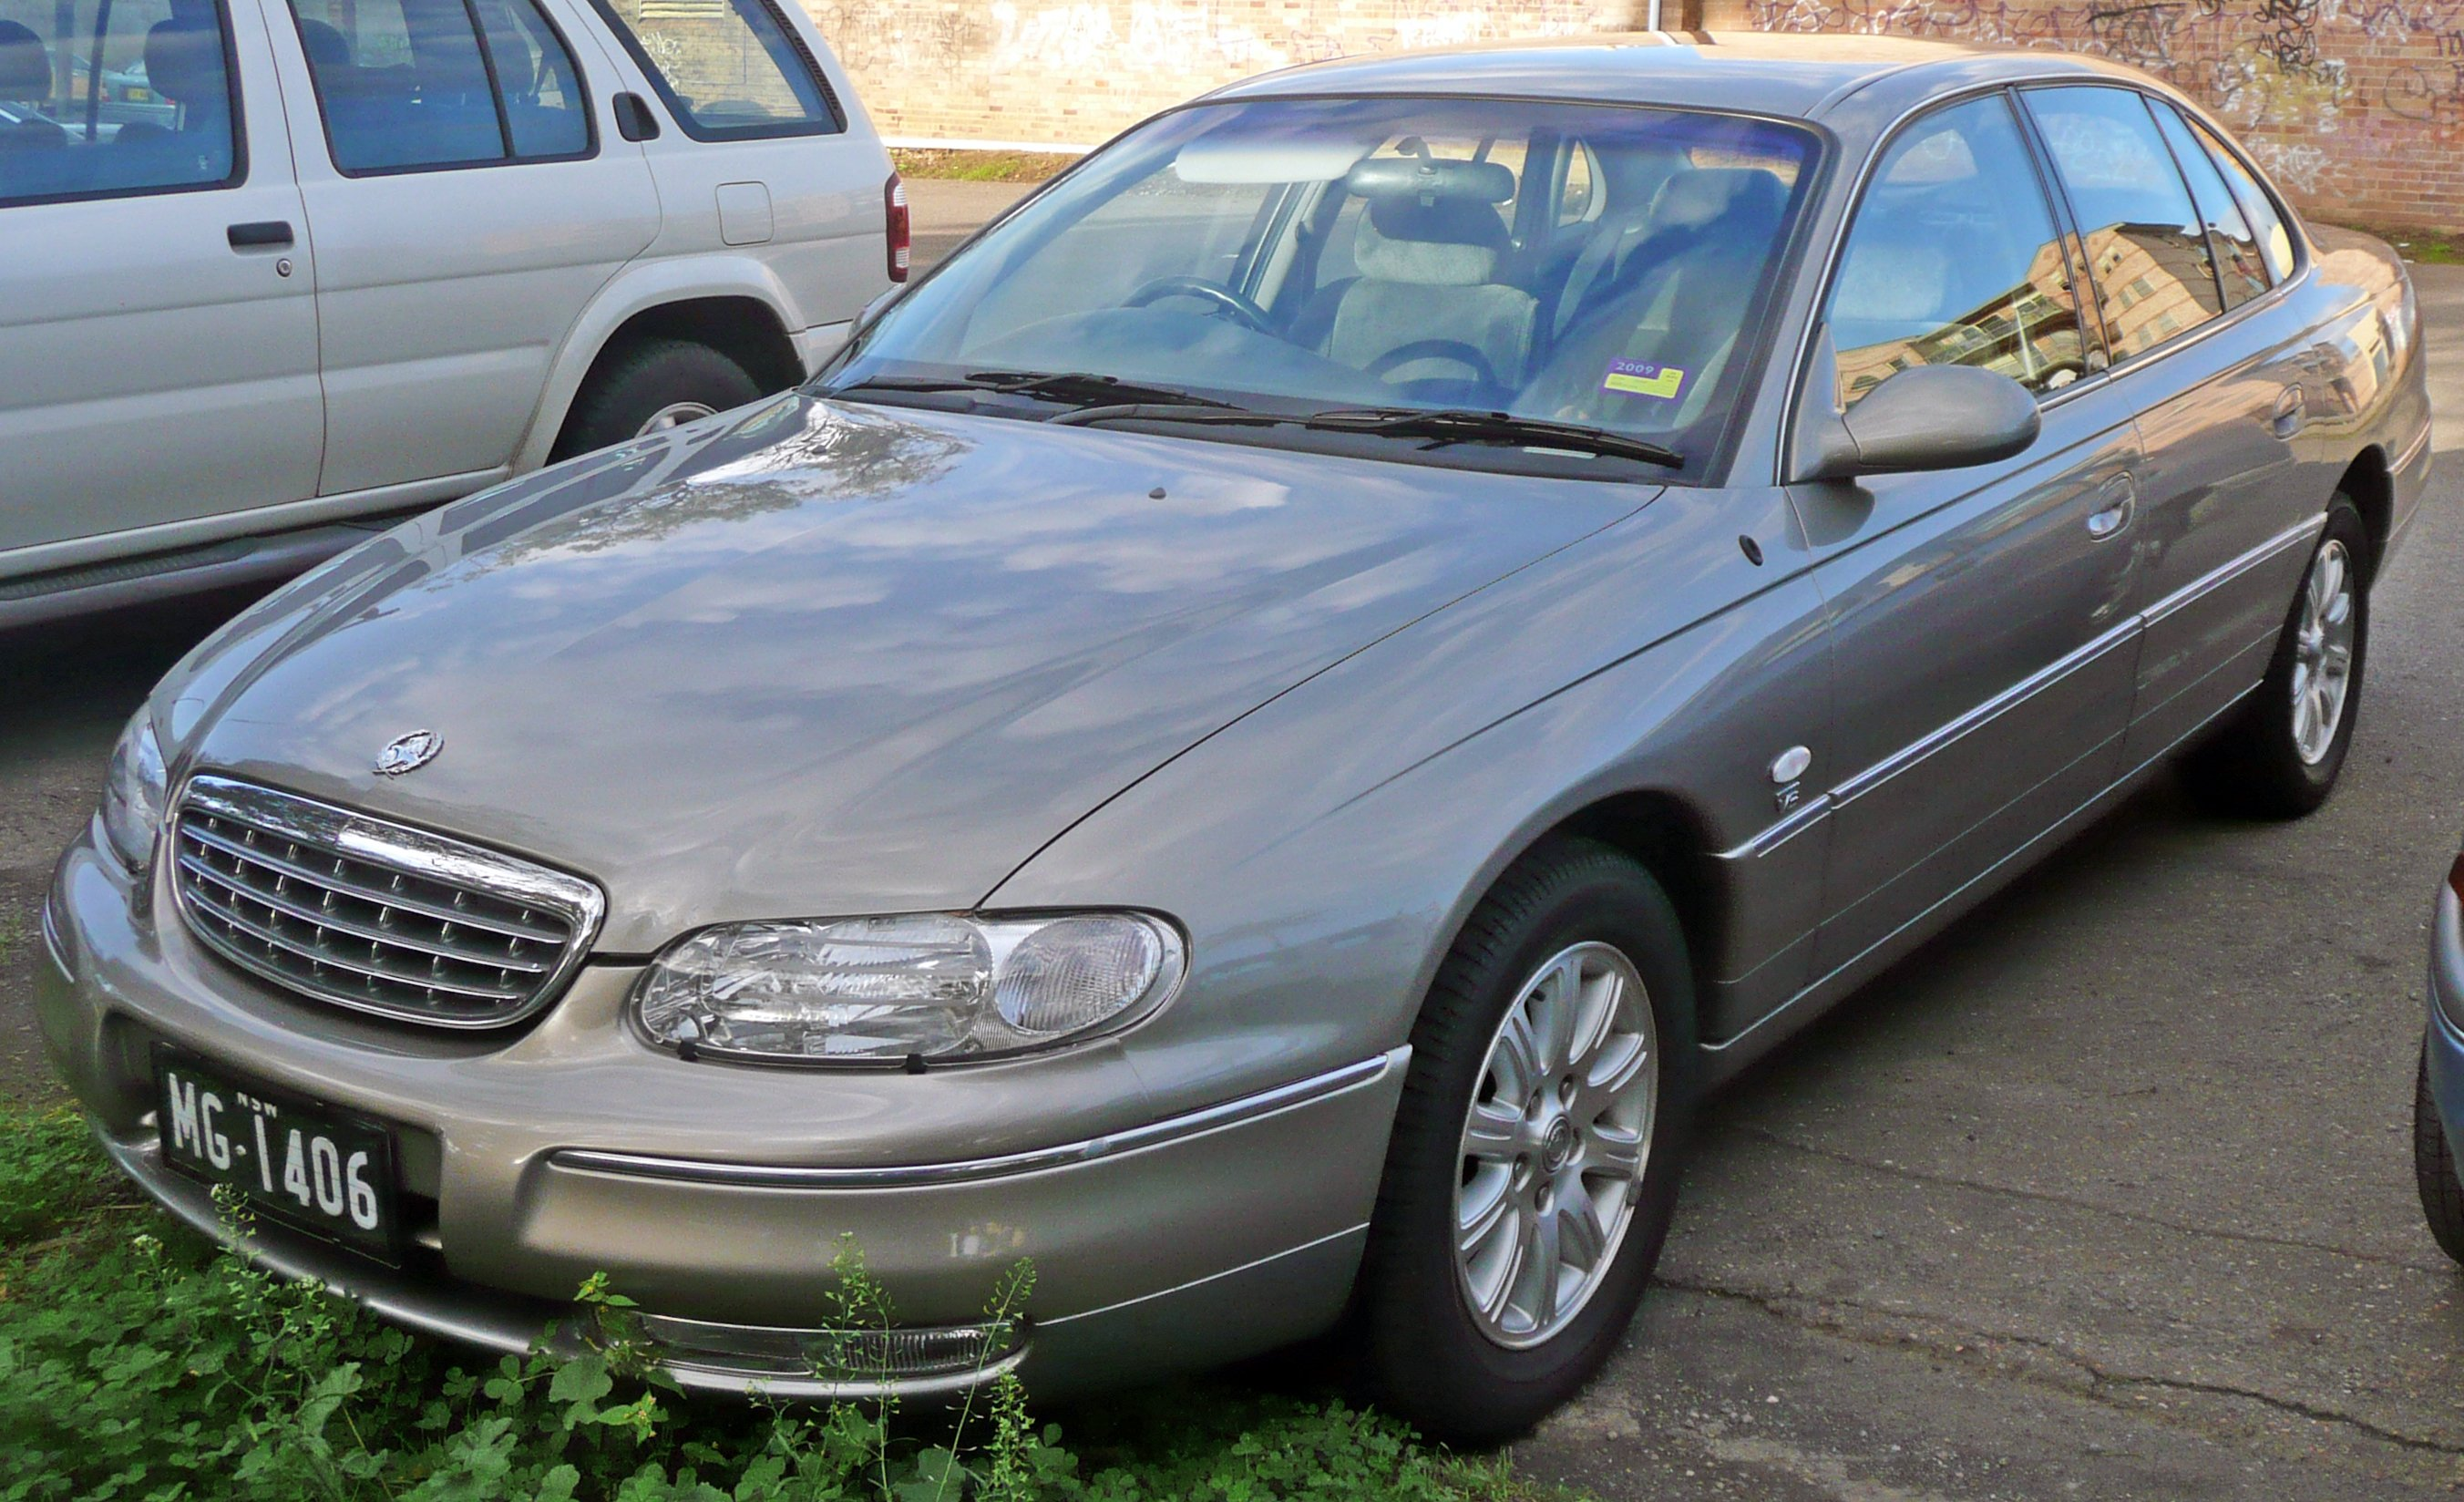 1996 holden caprice pictures information and specs auto rh auto database com 2001 Chevy Impala SS Price of 2001 Impala